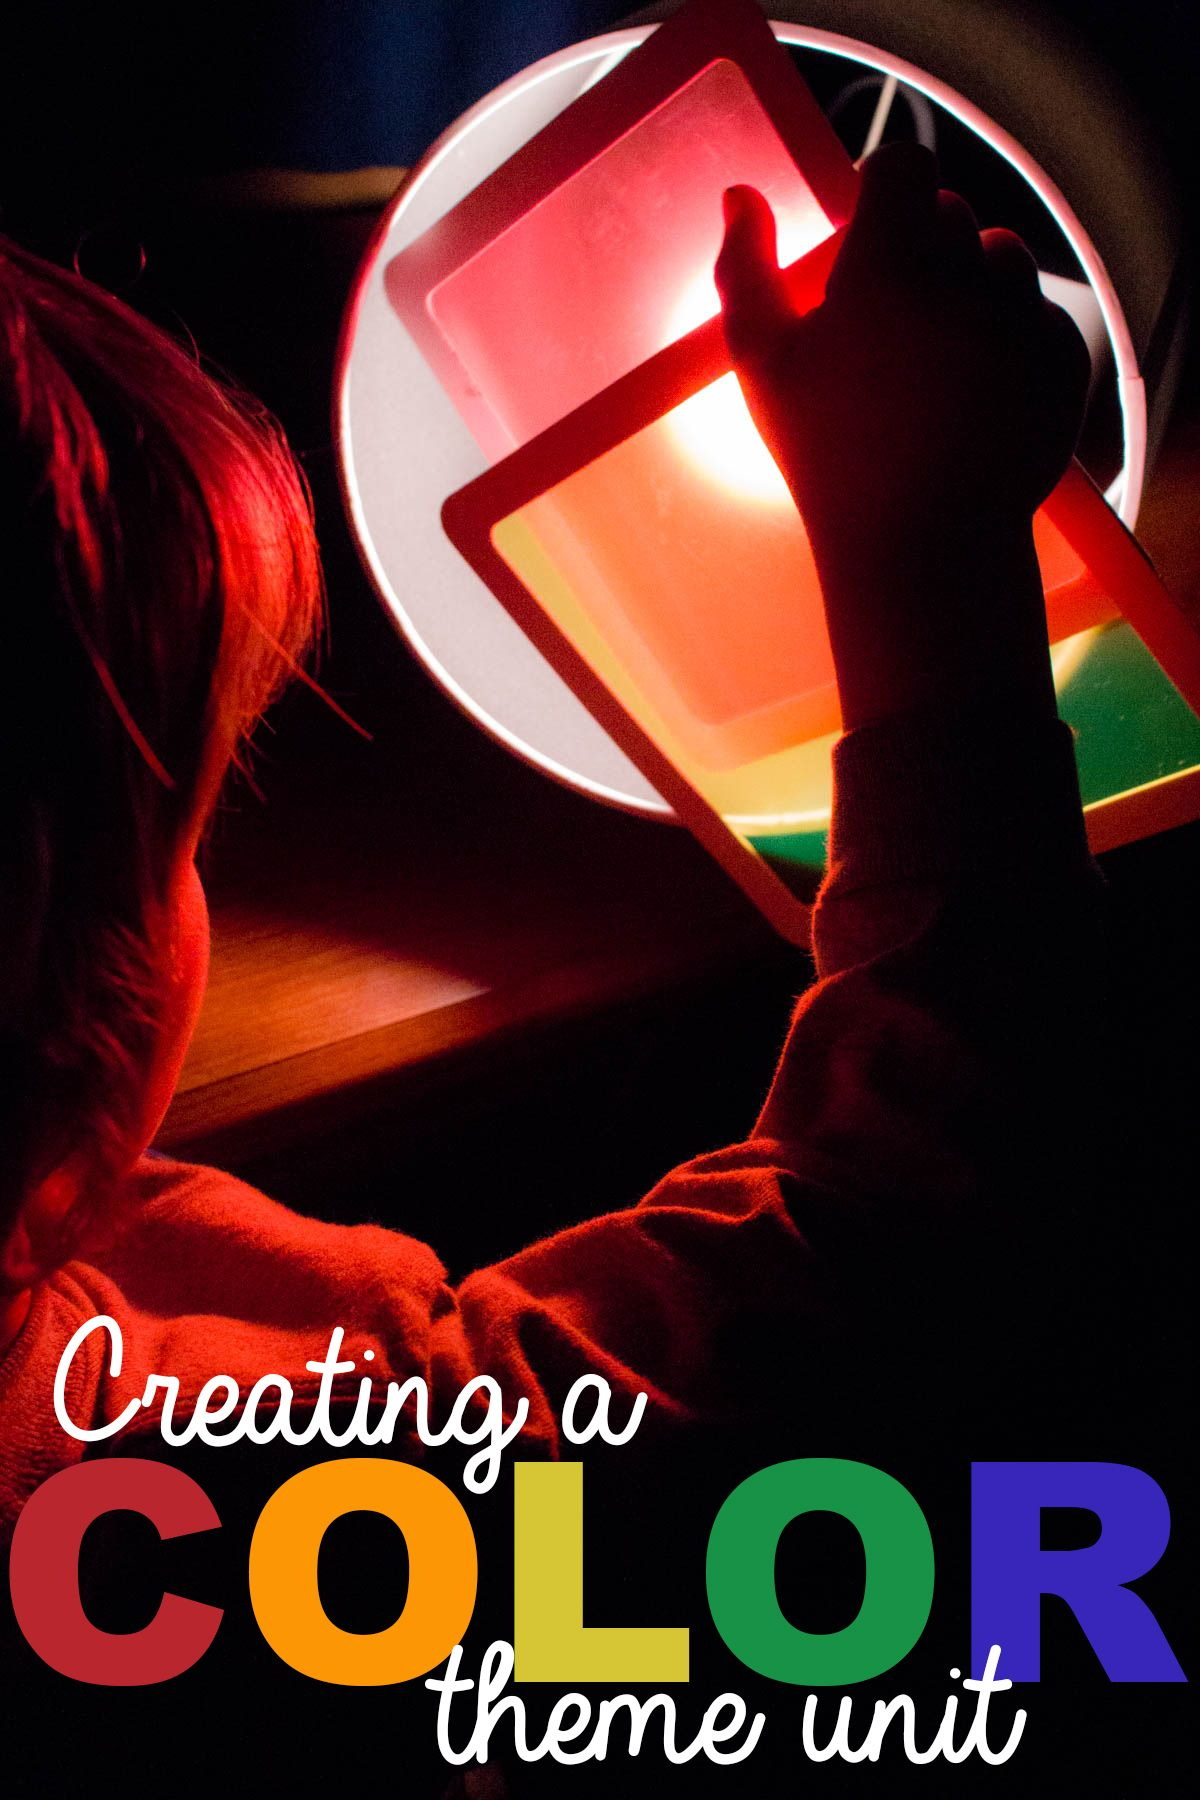 Learning colors art activities for preschool - Creating A Color Theme Unit For Kids